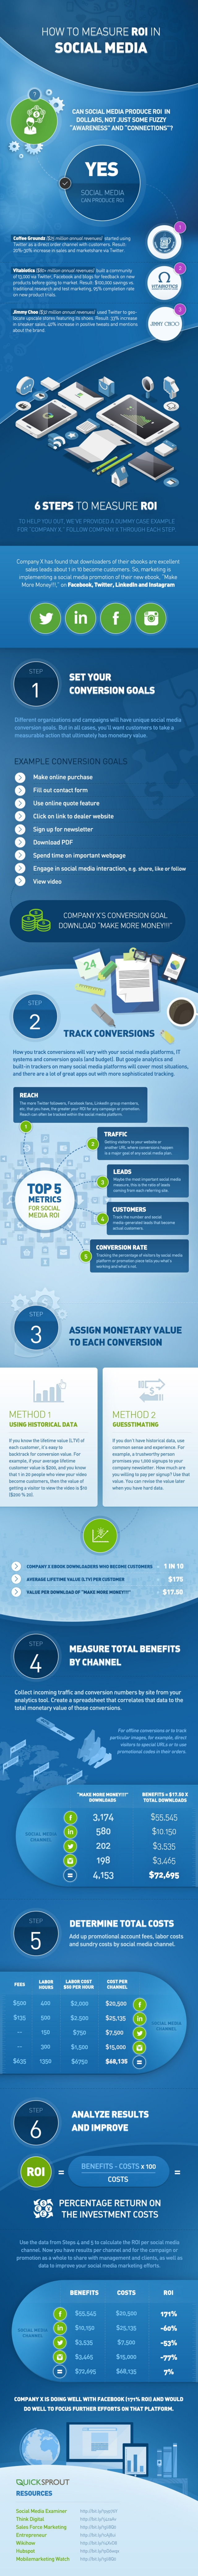 Is Your Social Media Strategy Working Here's How to Measure Your ROI